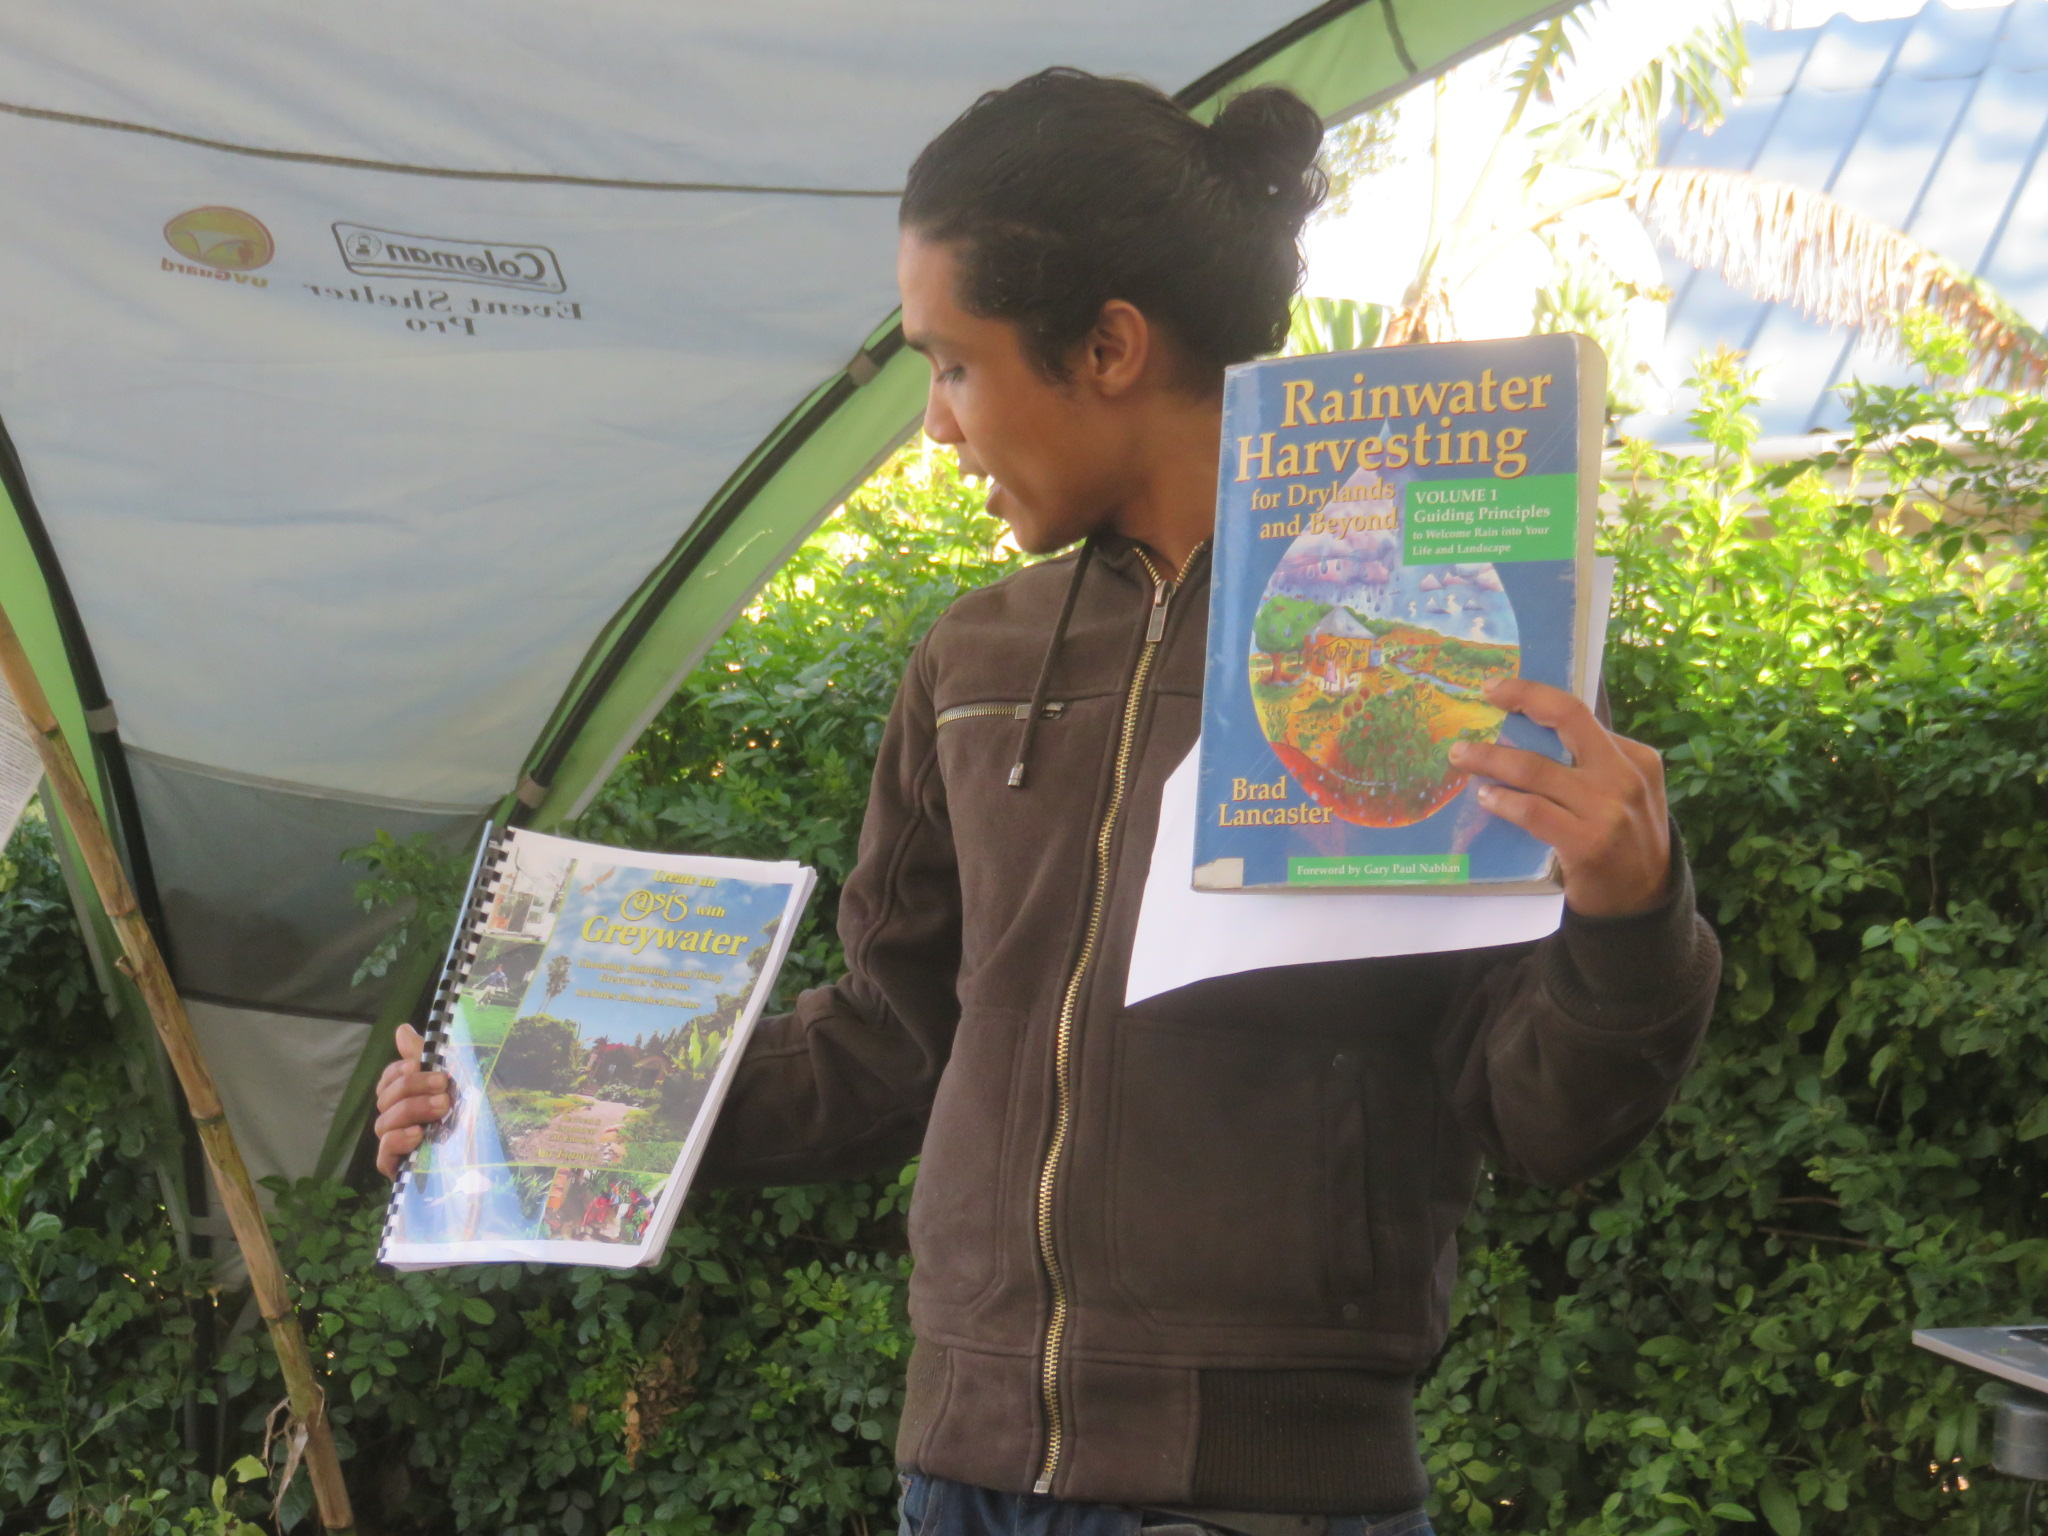 An introduction to some good water saving literature